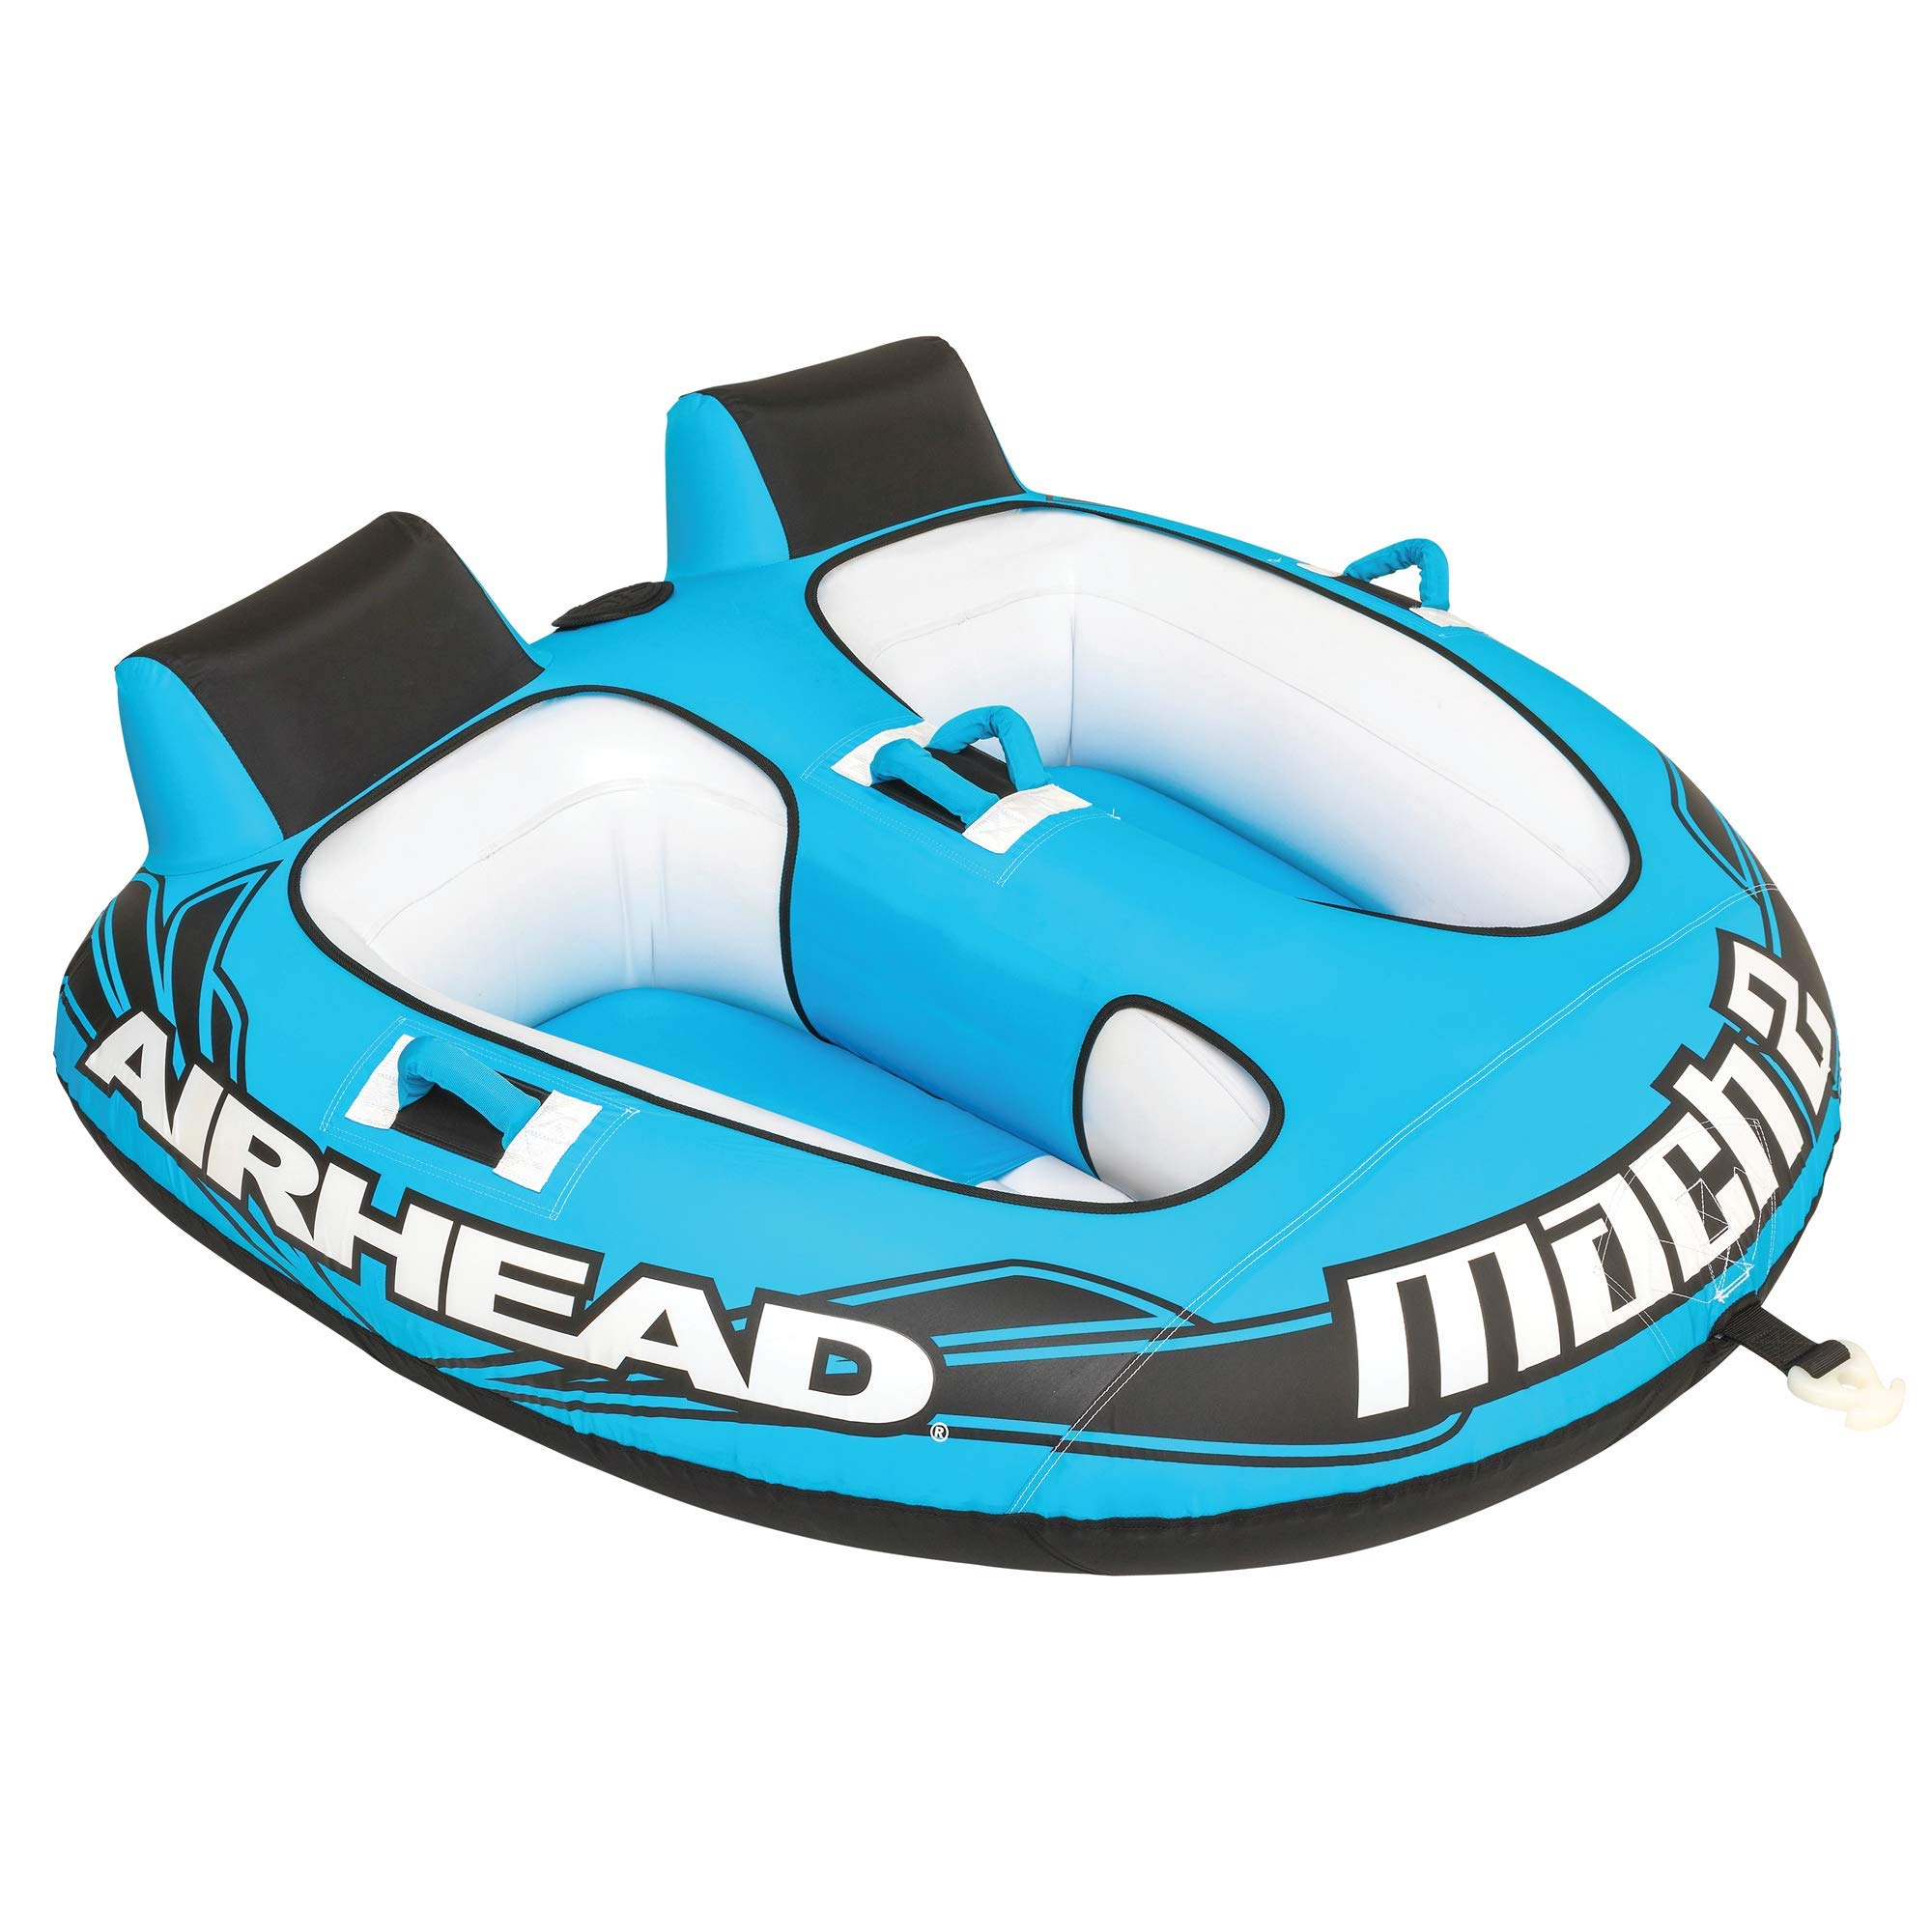 Airhead Mach 2 | 1-2 Rider Towable Tube for Boating by Airhead